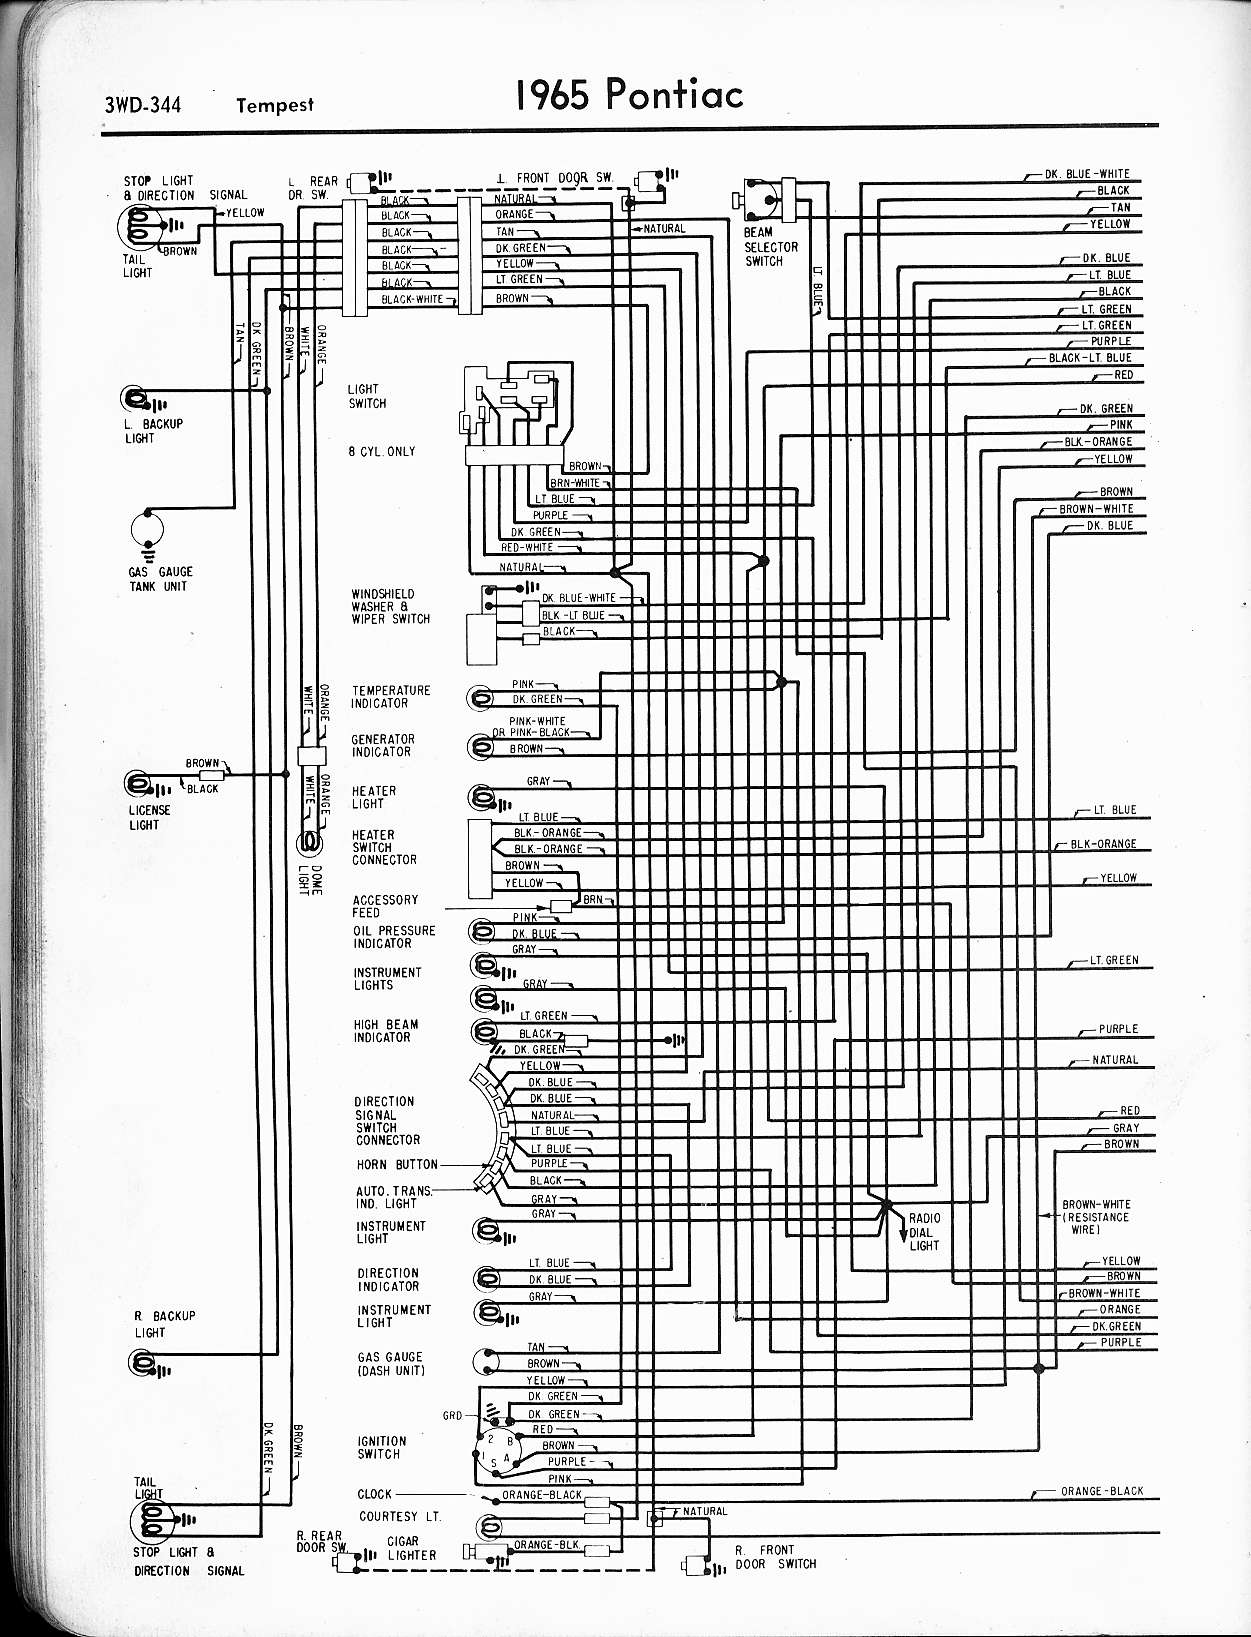 1974 Gto Wiring Harness Diagrams Schematics 74 Nova 1966 Diagram Rh Readinghypnotherapist Co Uk 1973